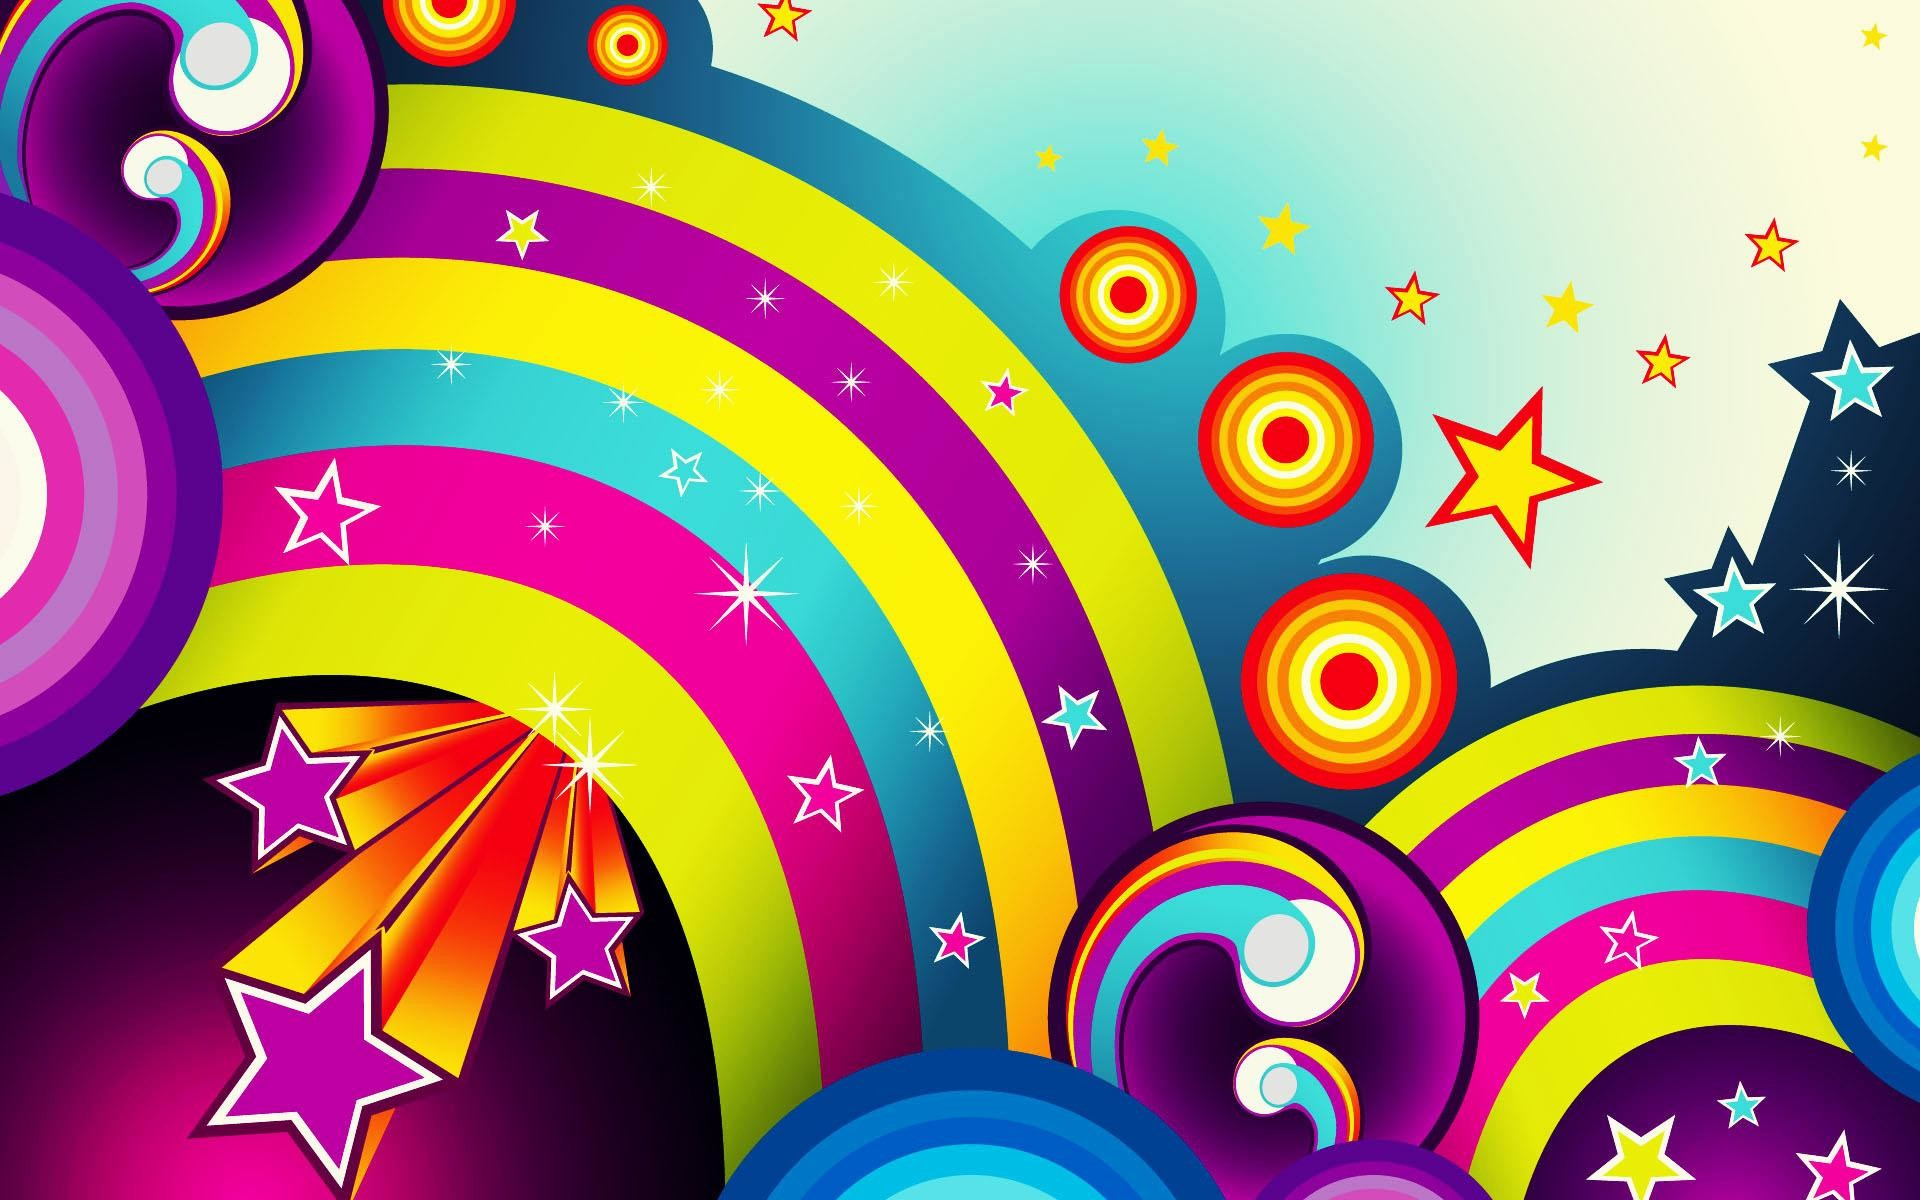 Colorful-Wallpaper-HD-Pictures-free